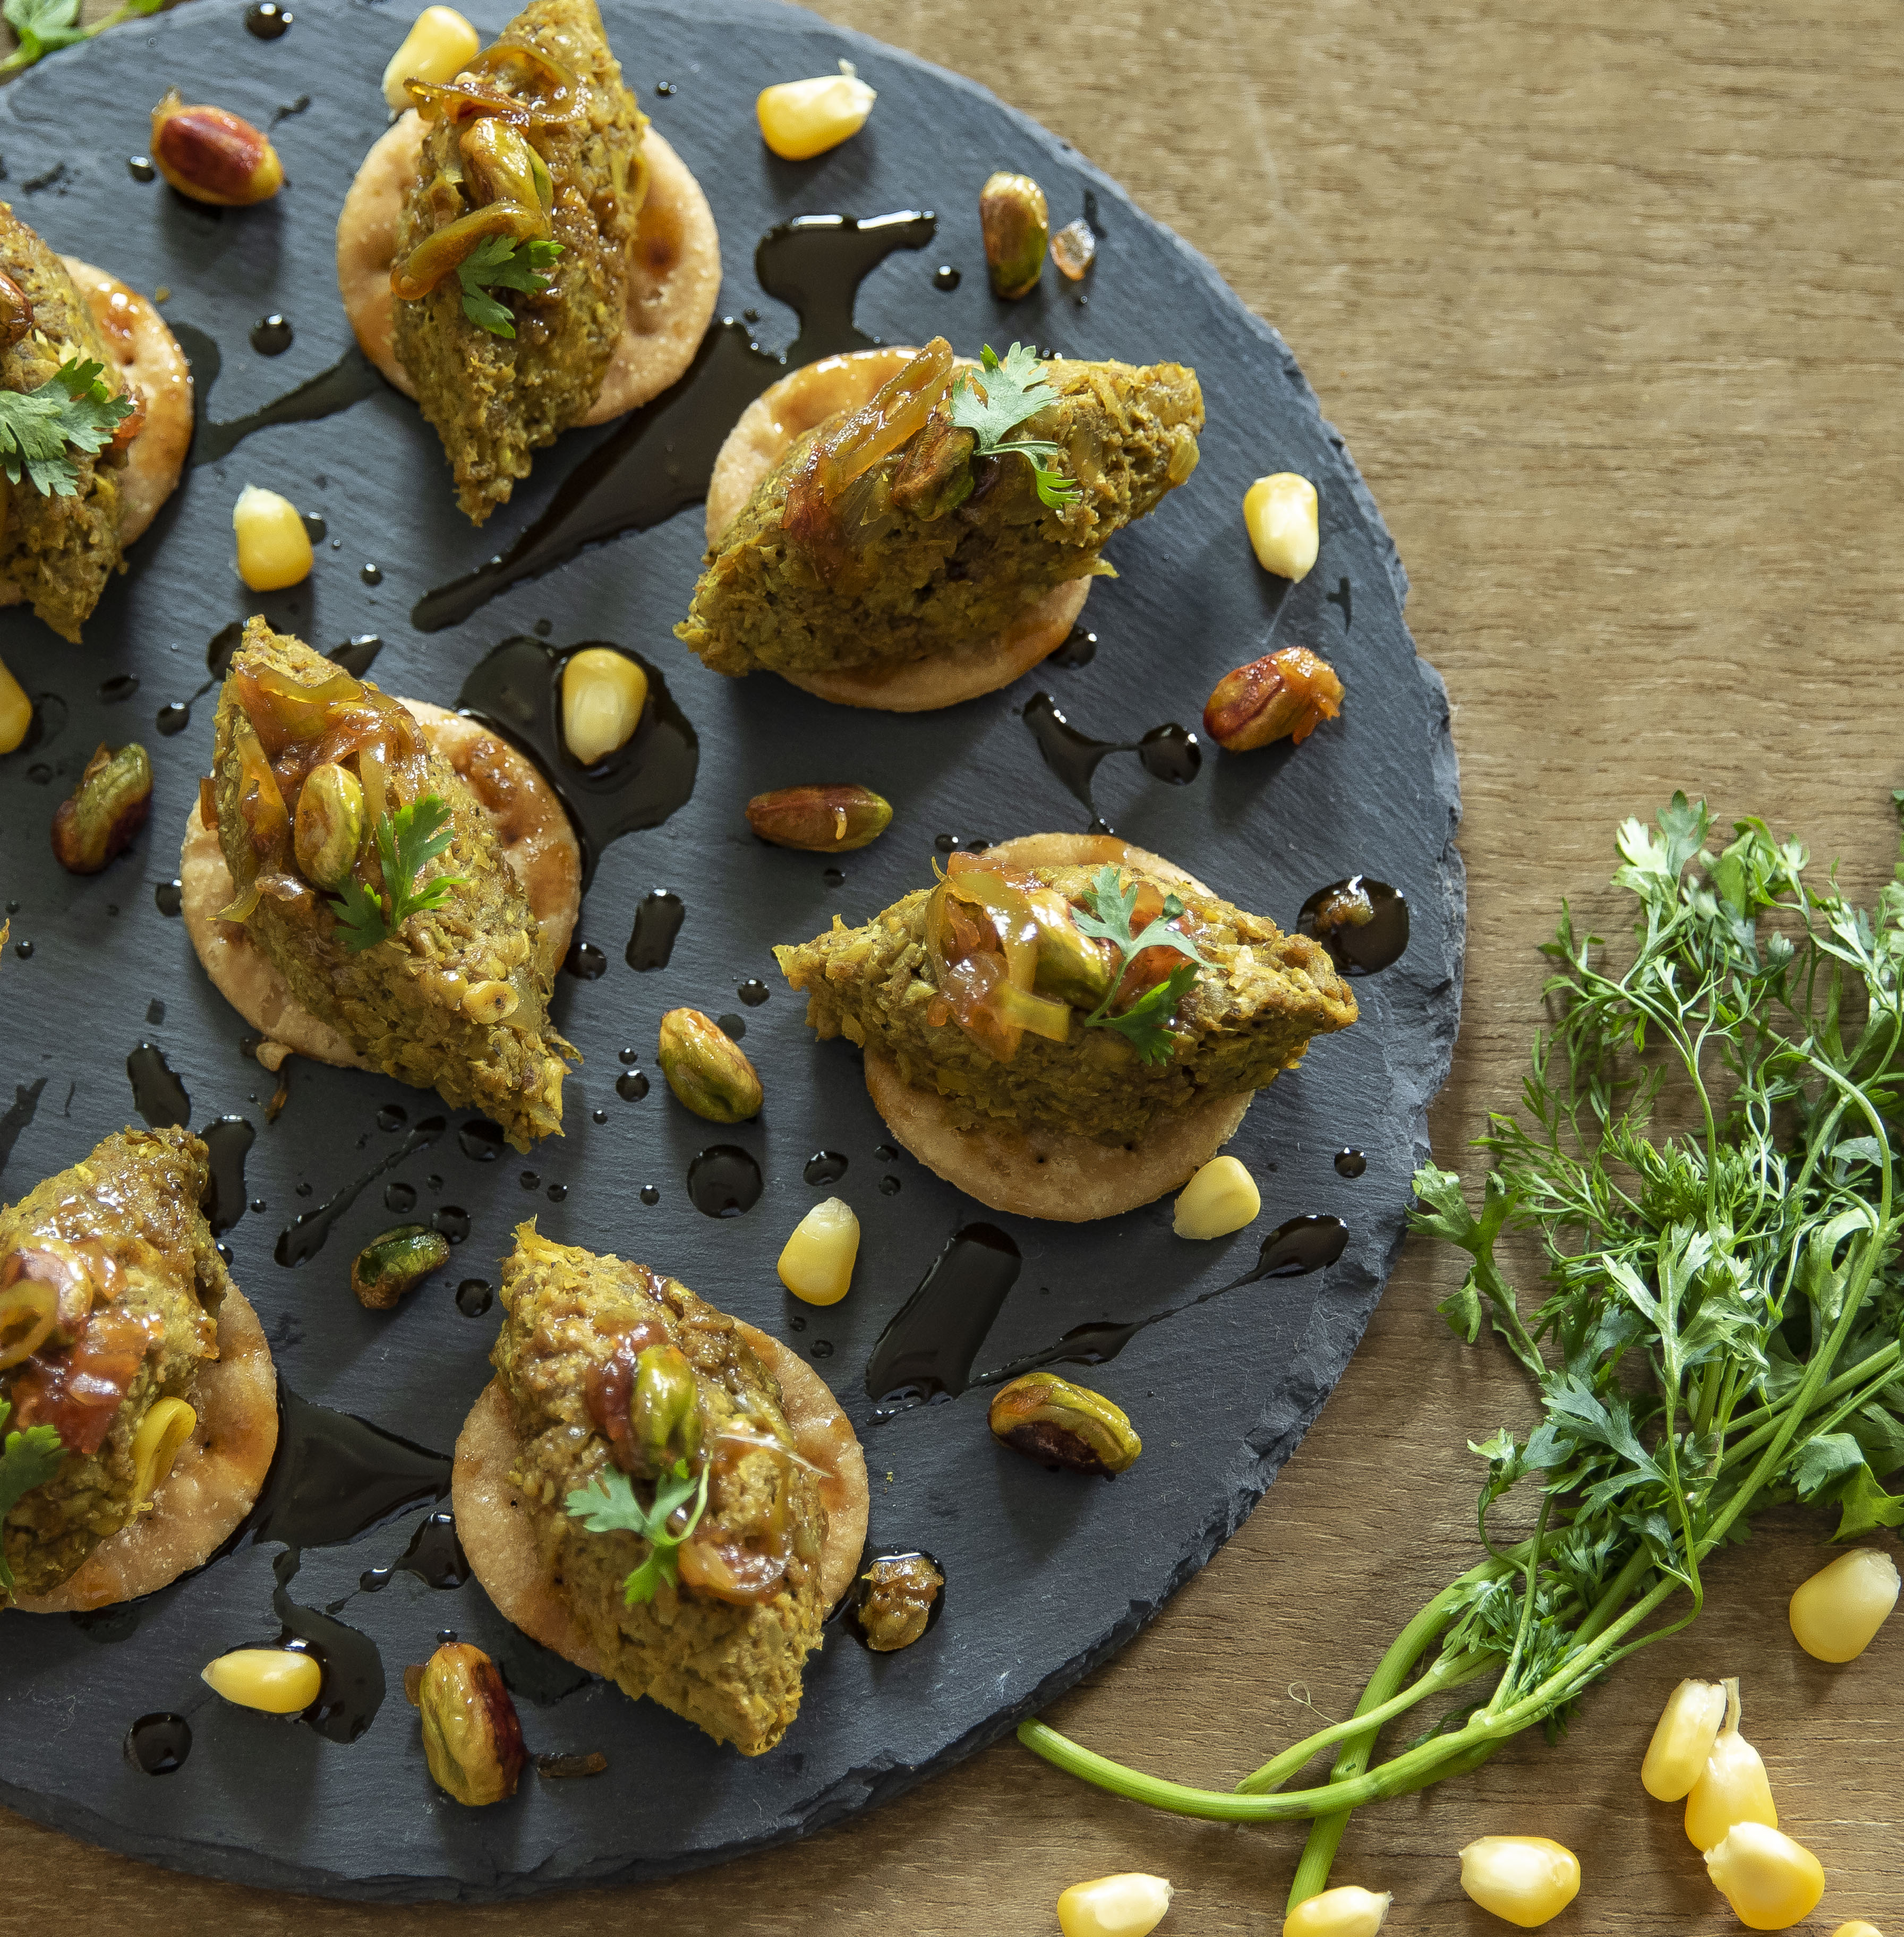 Mutton and Corn Paapdi chaat recipe